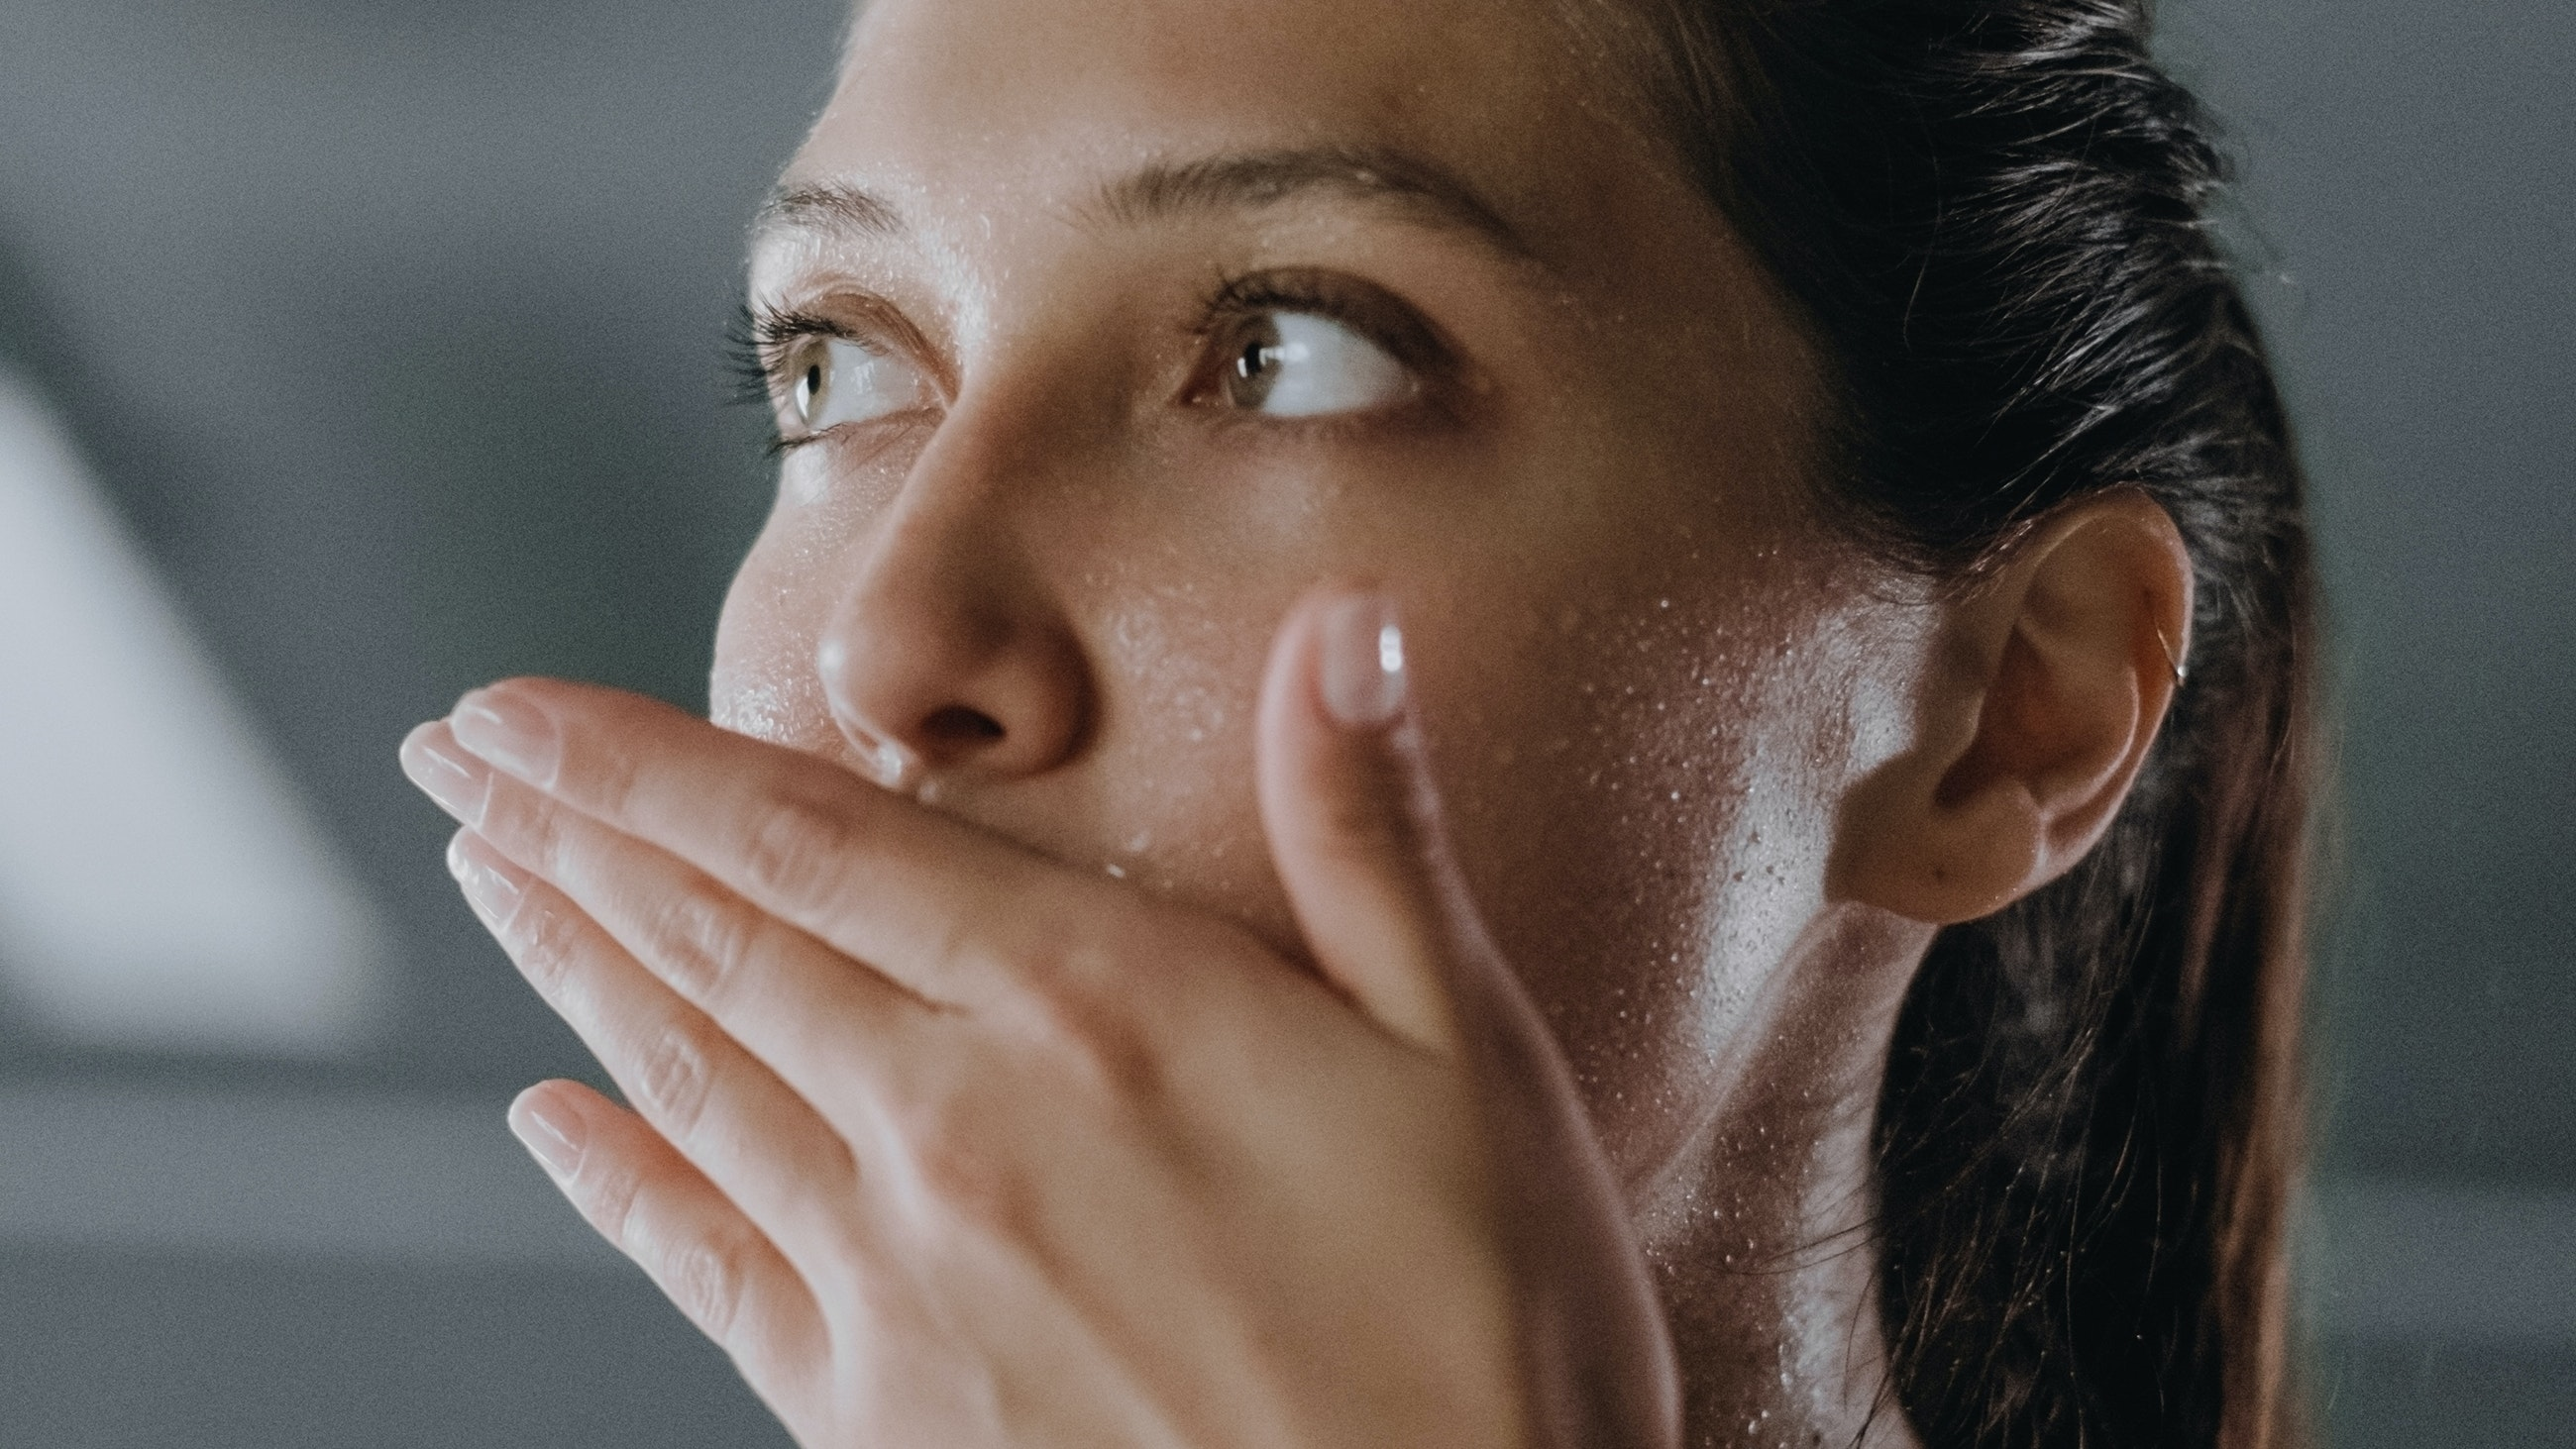 What Are the Consequences of Sweating With Makeup On? Experts Answer